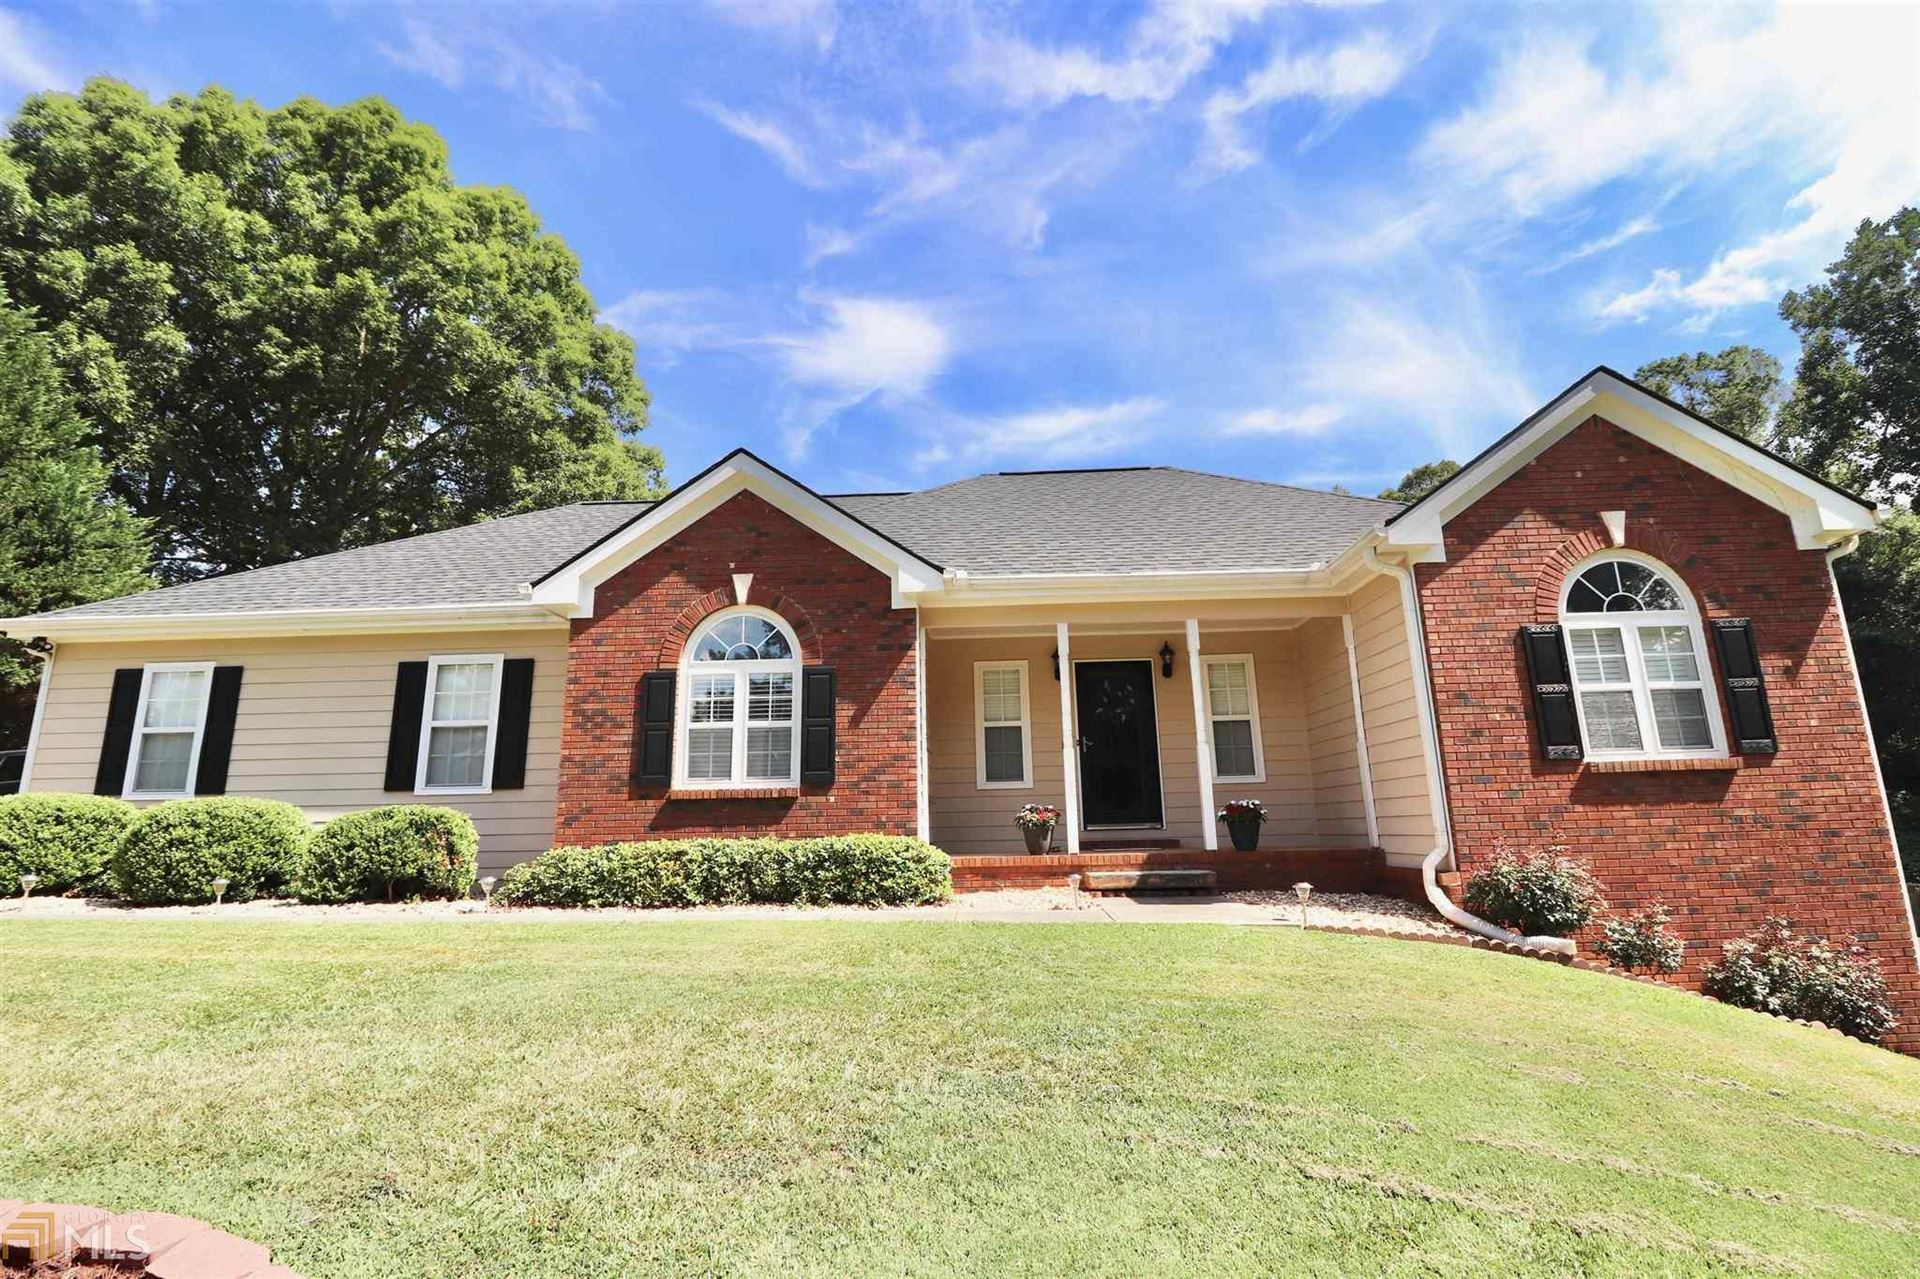 798 Highway 211, Winder, GA 30680 - #: 8829624